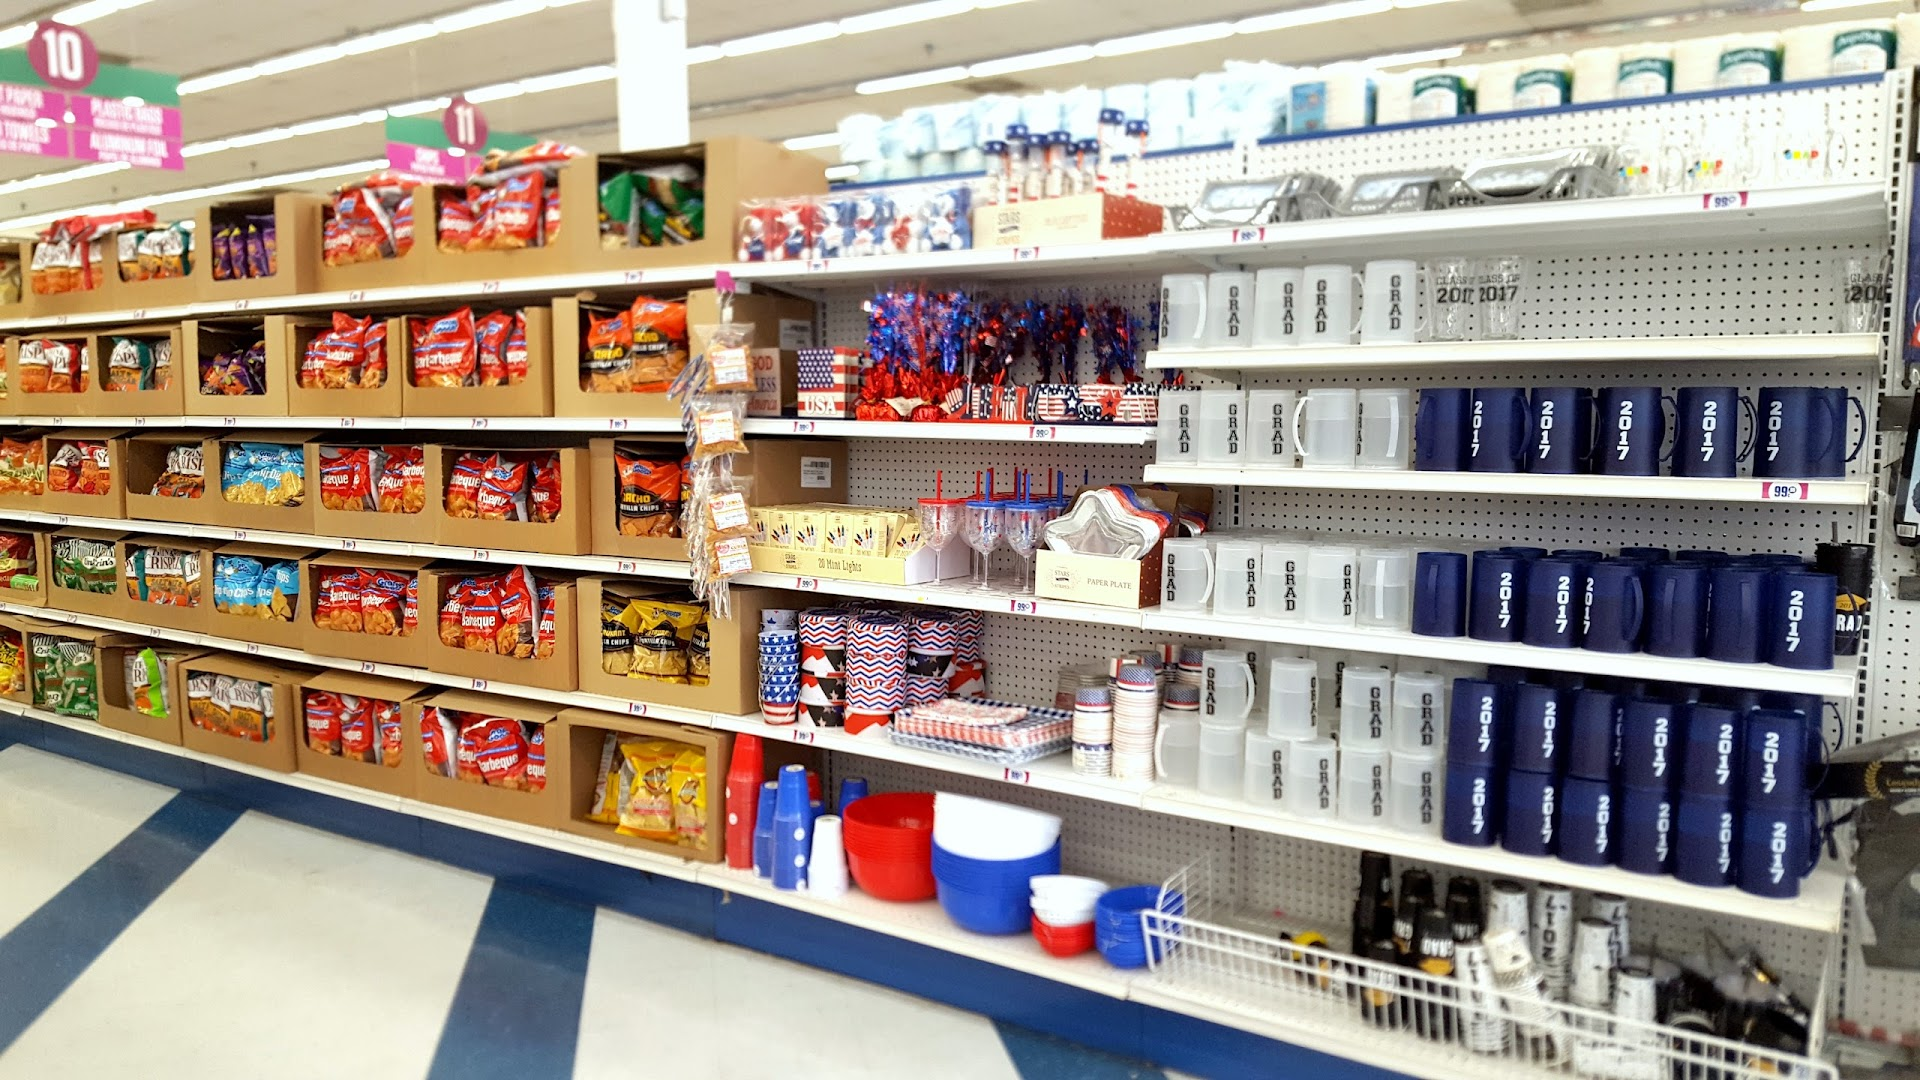 4th of July, party supplies